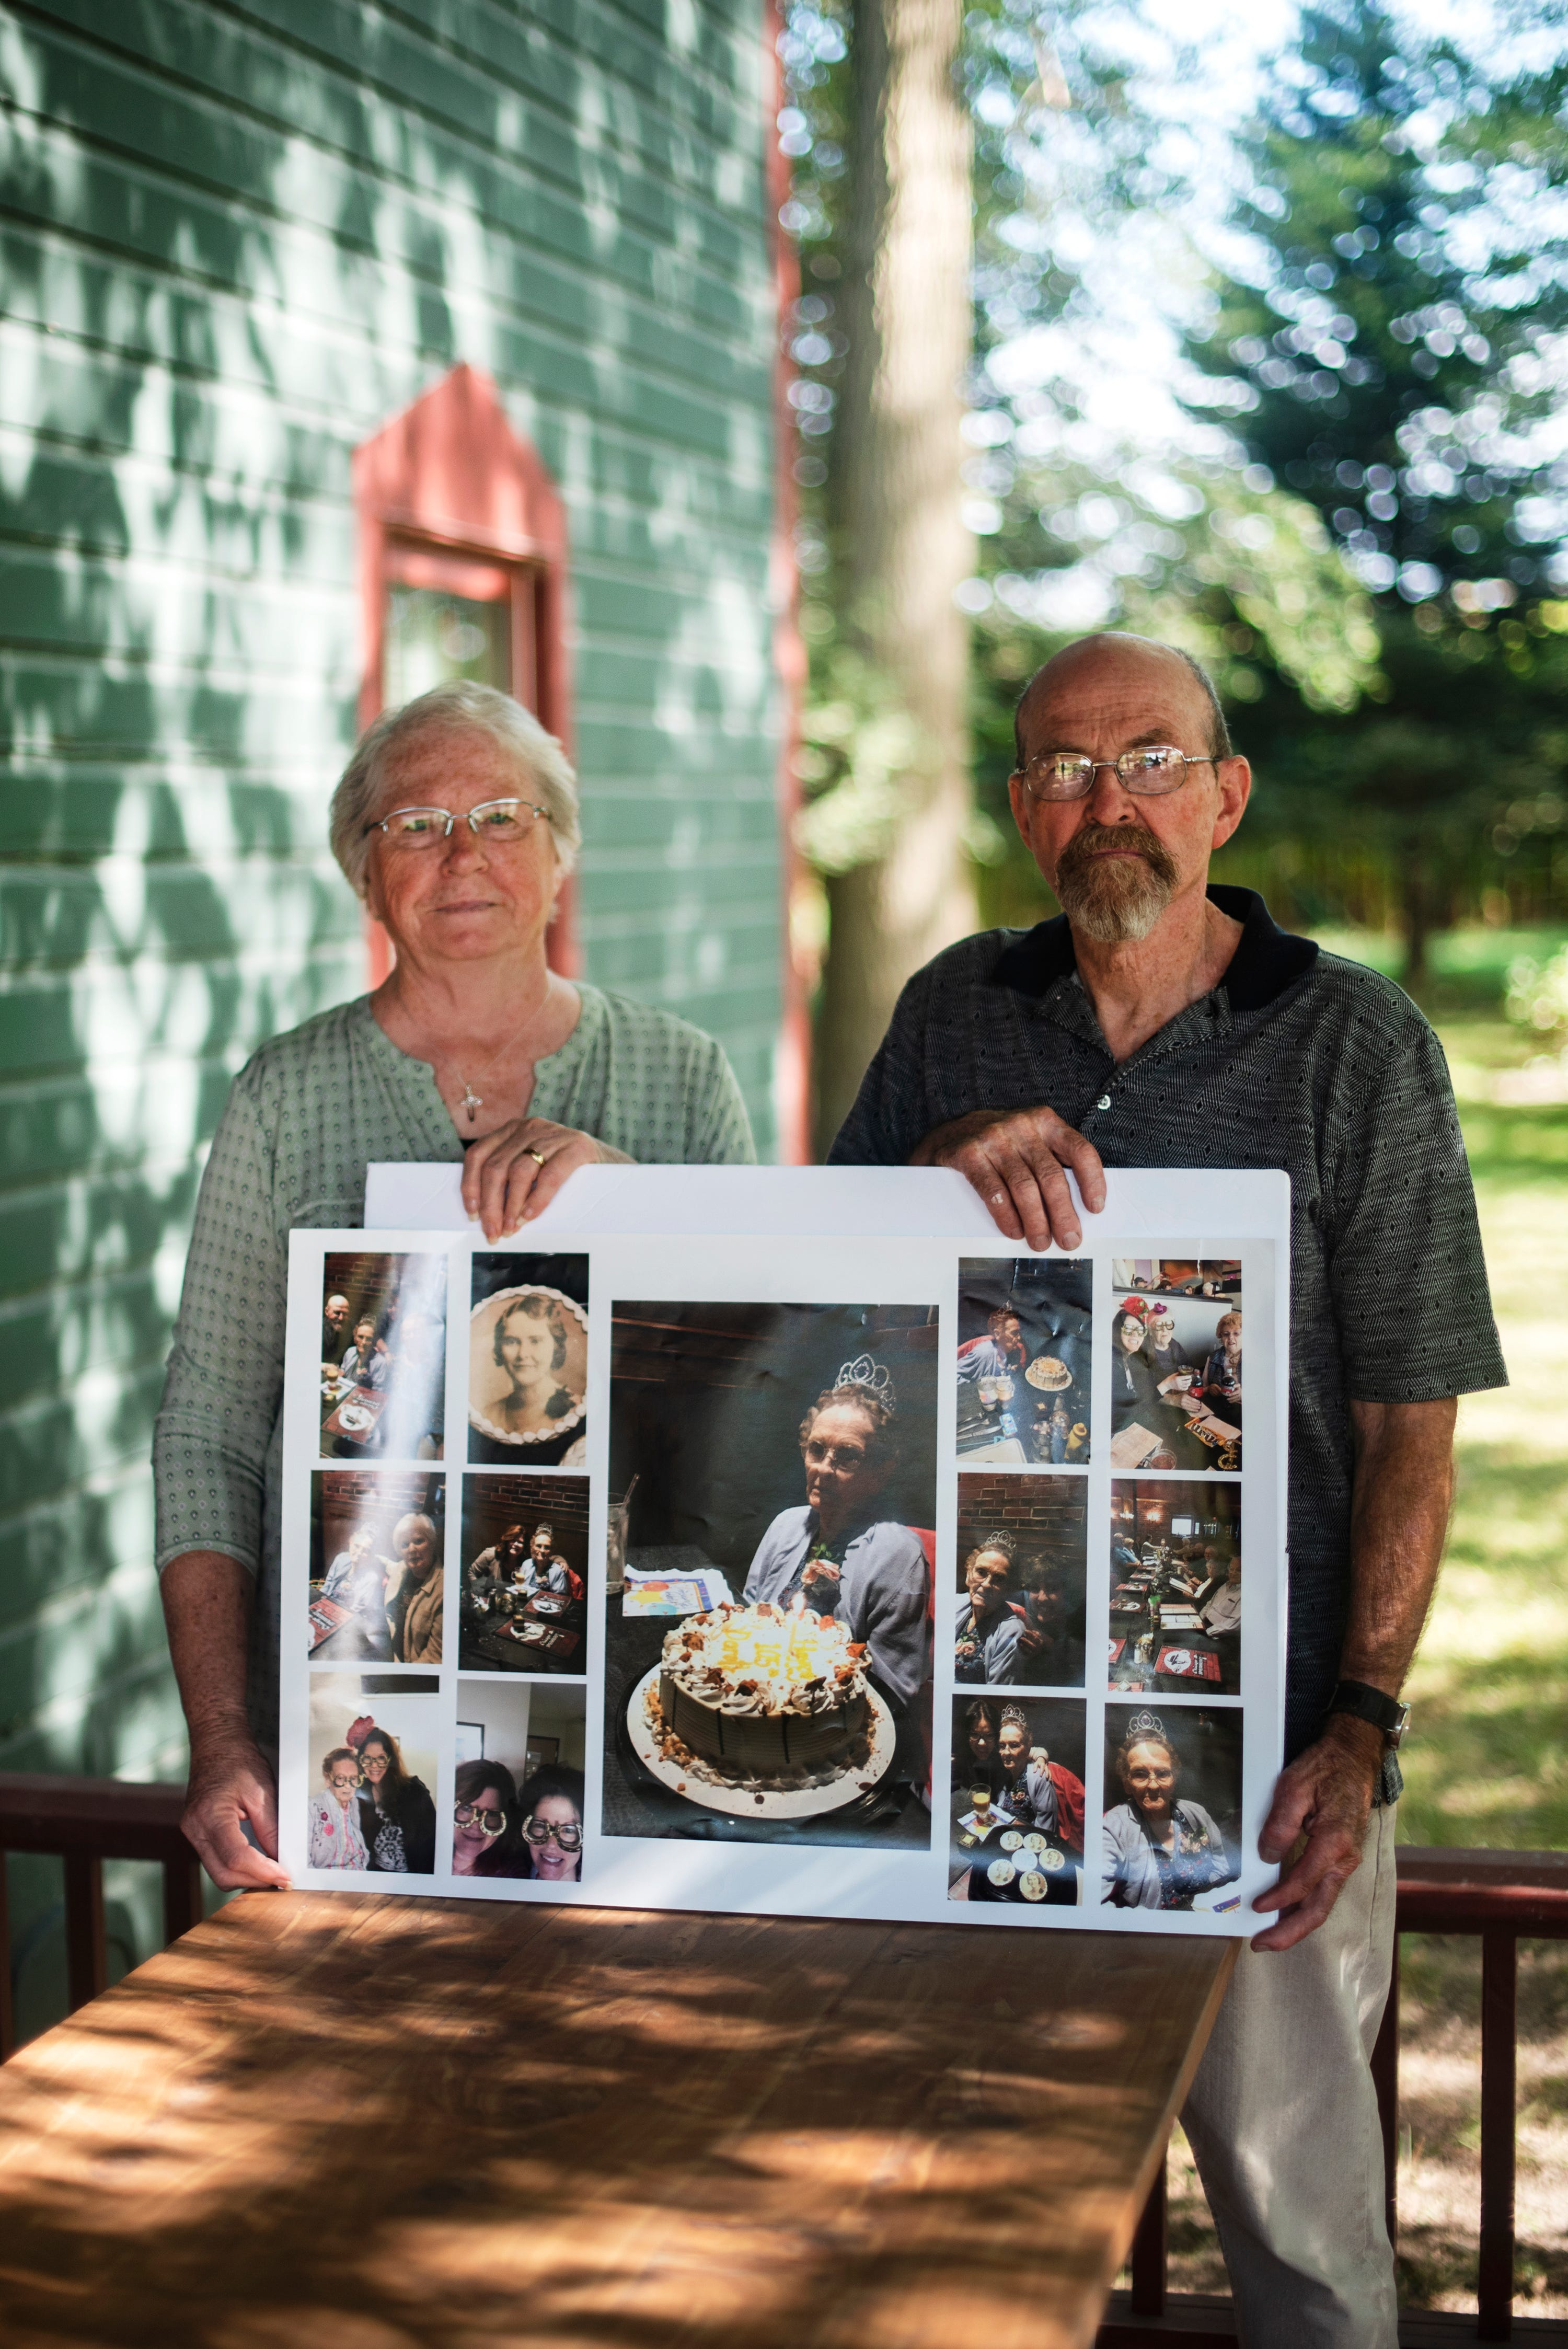 """Dorothy """"Dot"""" Thompson, 105, died on April 29, 2020 from complications of COVID-19. Dot's cousin, Ron McBroom, and his wife, Ginnie Hargis (pictured) remember Dot's fame as a humble pie-baker, with lemon meringue as her specialty."""